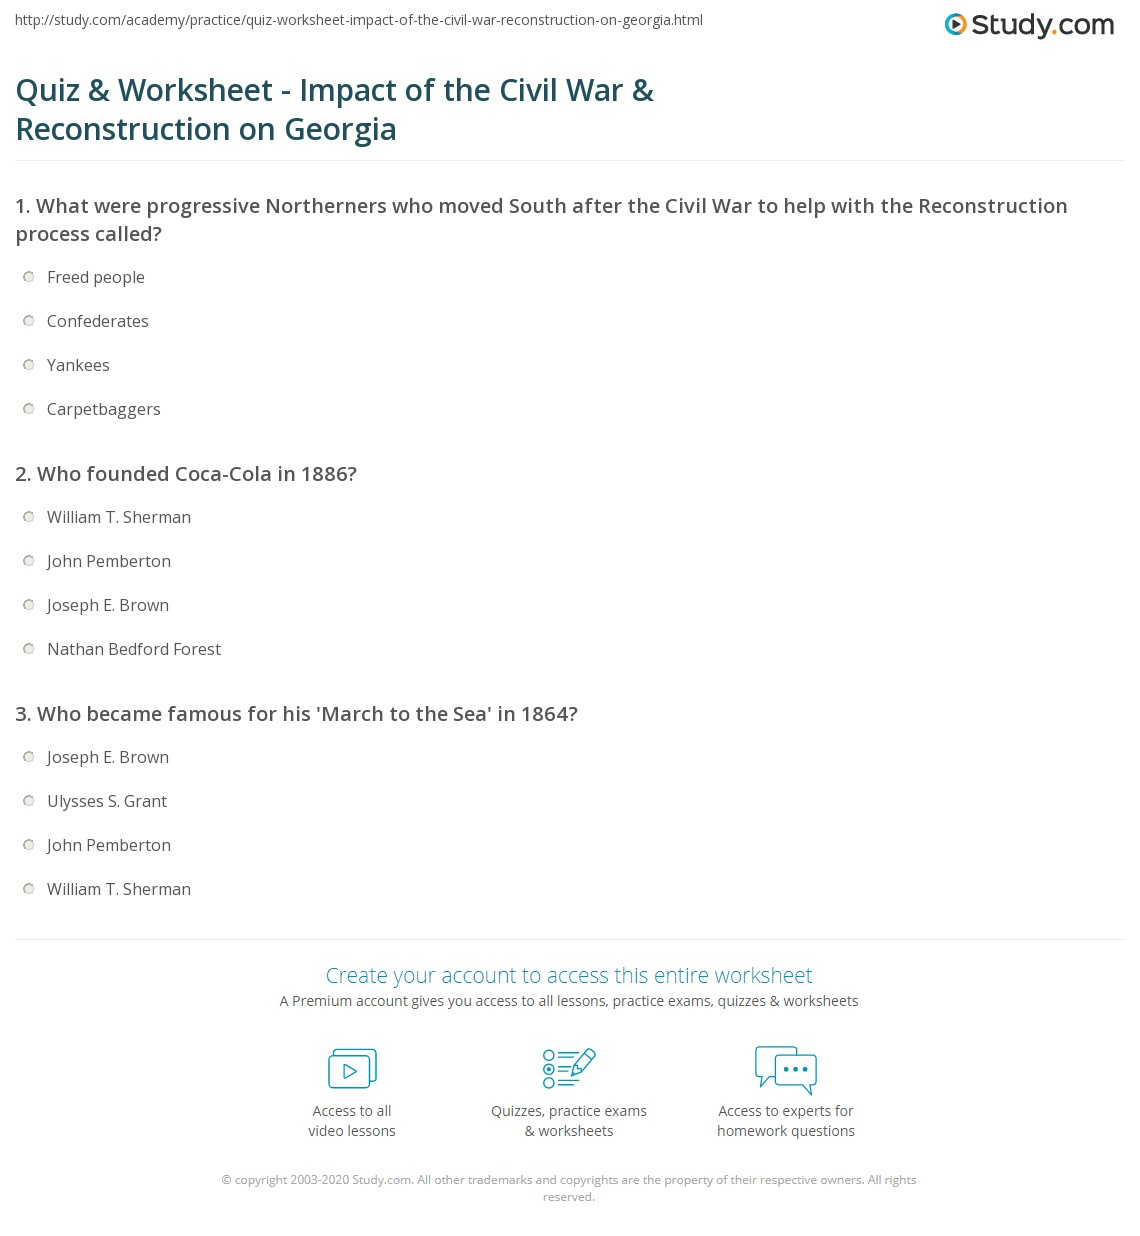 Quiz Worksheet Impact Of The Civil War Reconstruction On